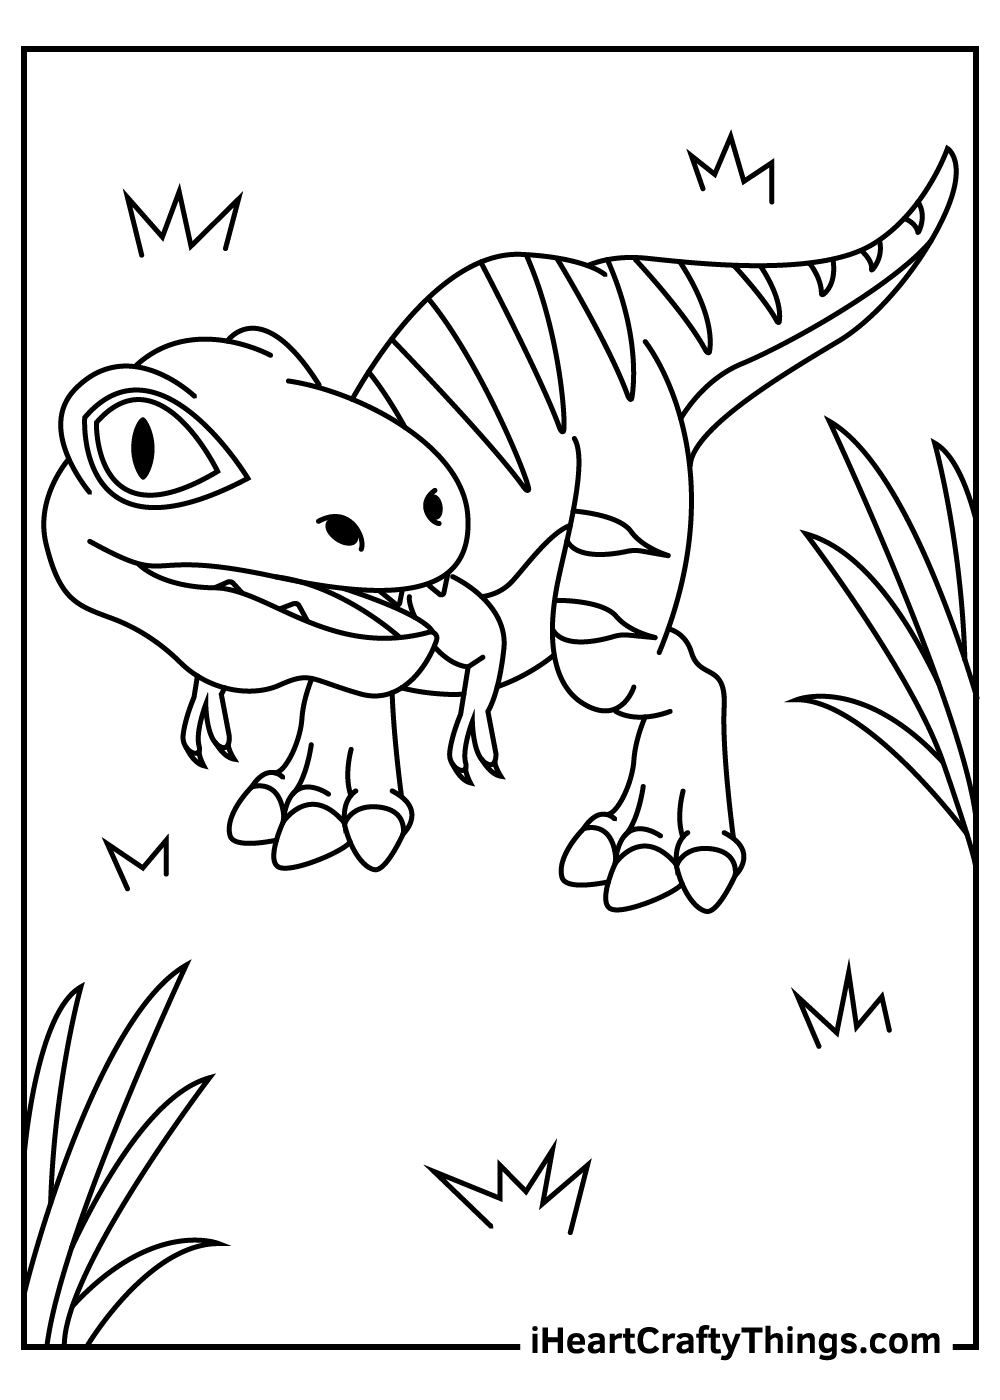 jurassic park velociraptor coloring pages